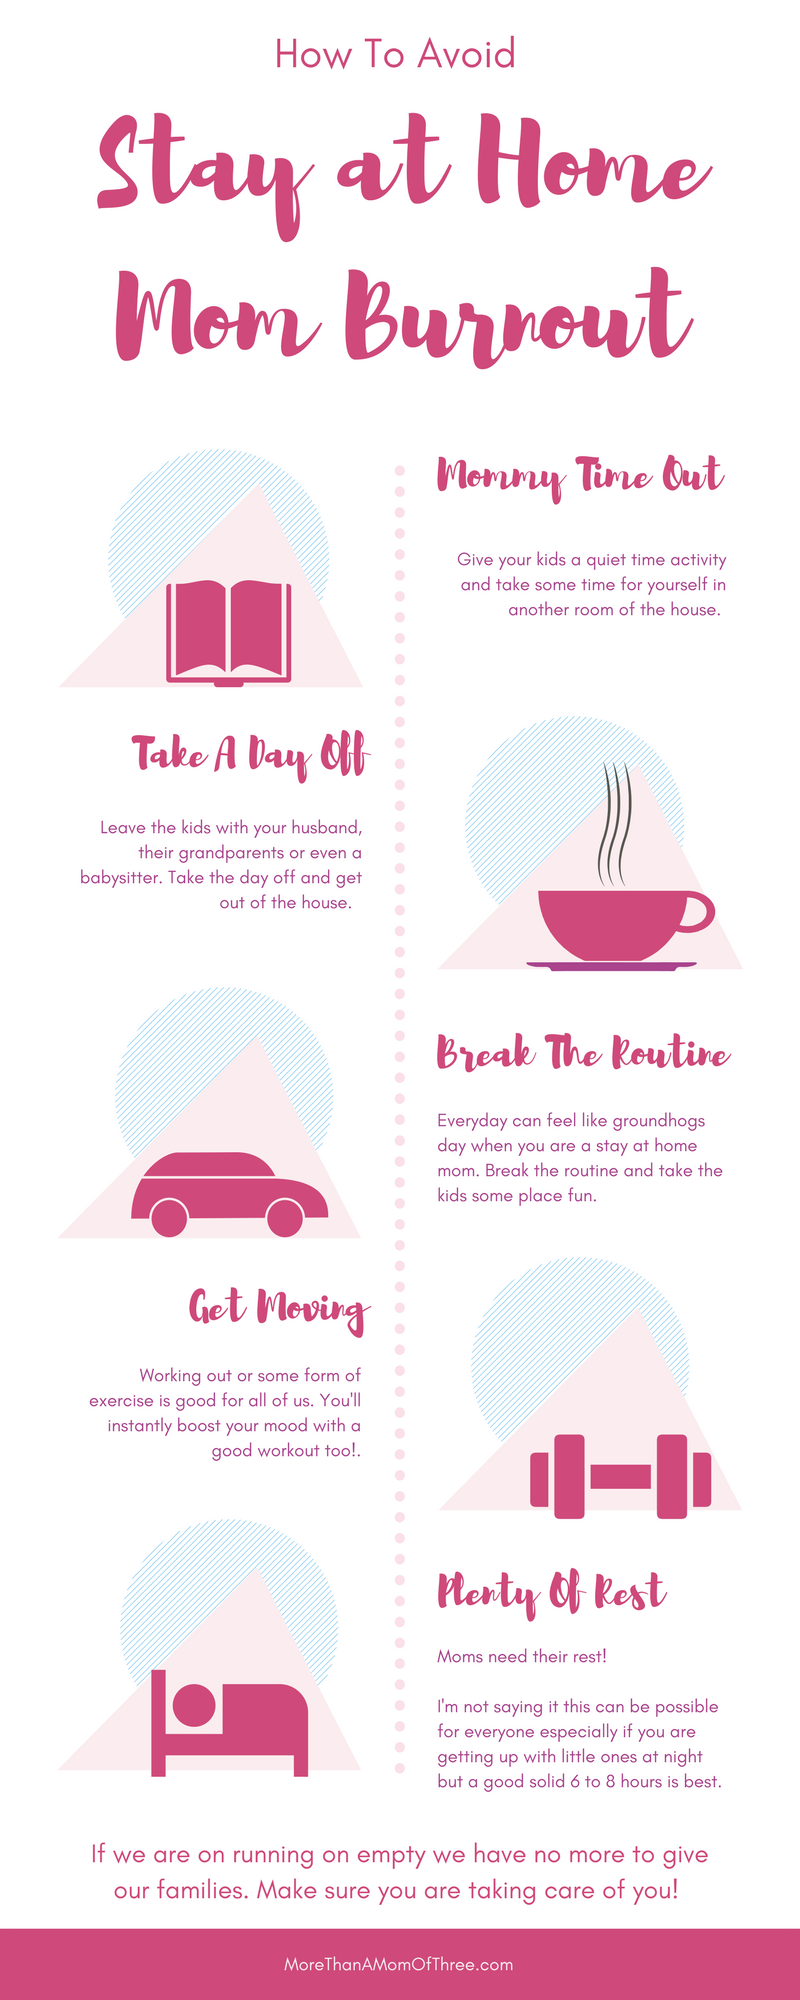 Stay At Home Mom Jobs Ideas: Tips On How To Avoid Stay At Home Mom Burnout